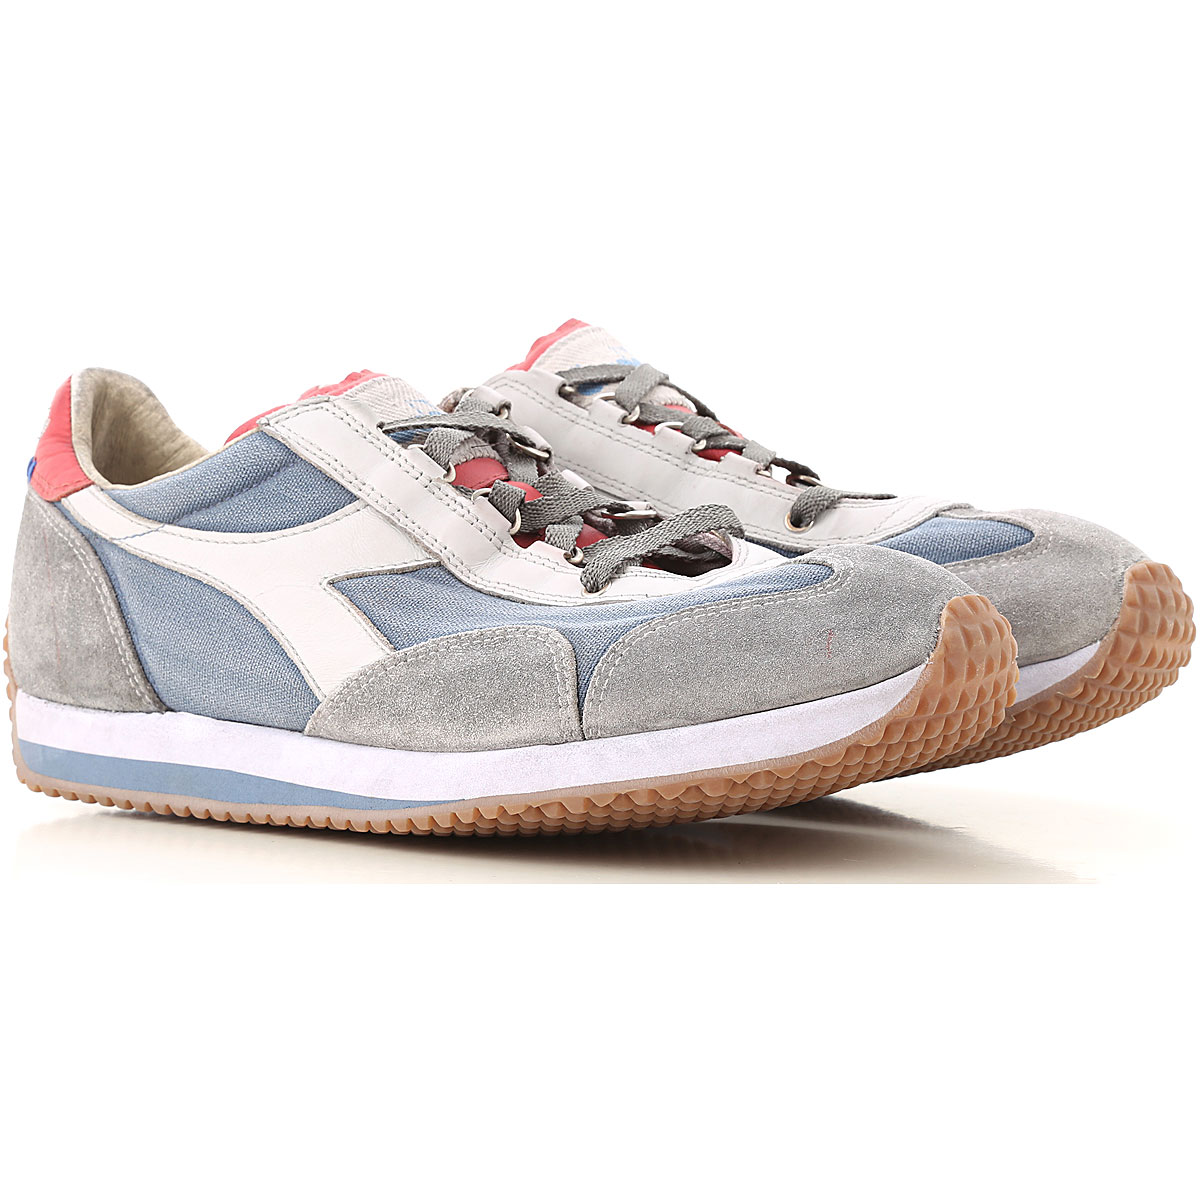 Diadora Sneakers for Men On Sale, Bering Sea, Suede leather, 2019, 7 8